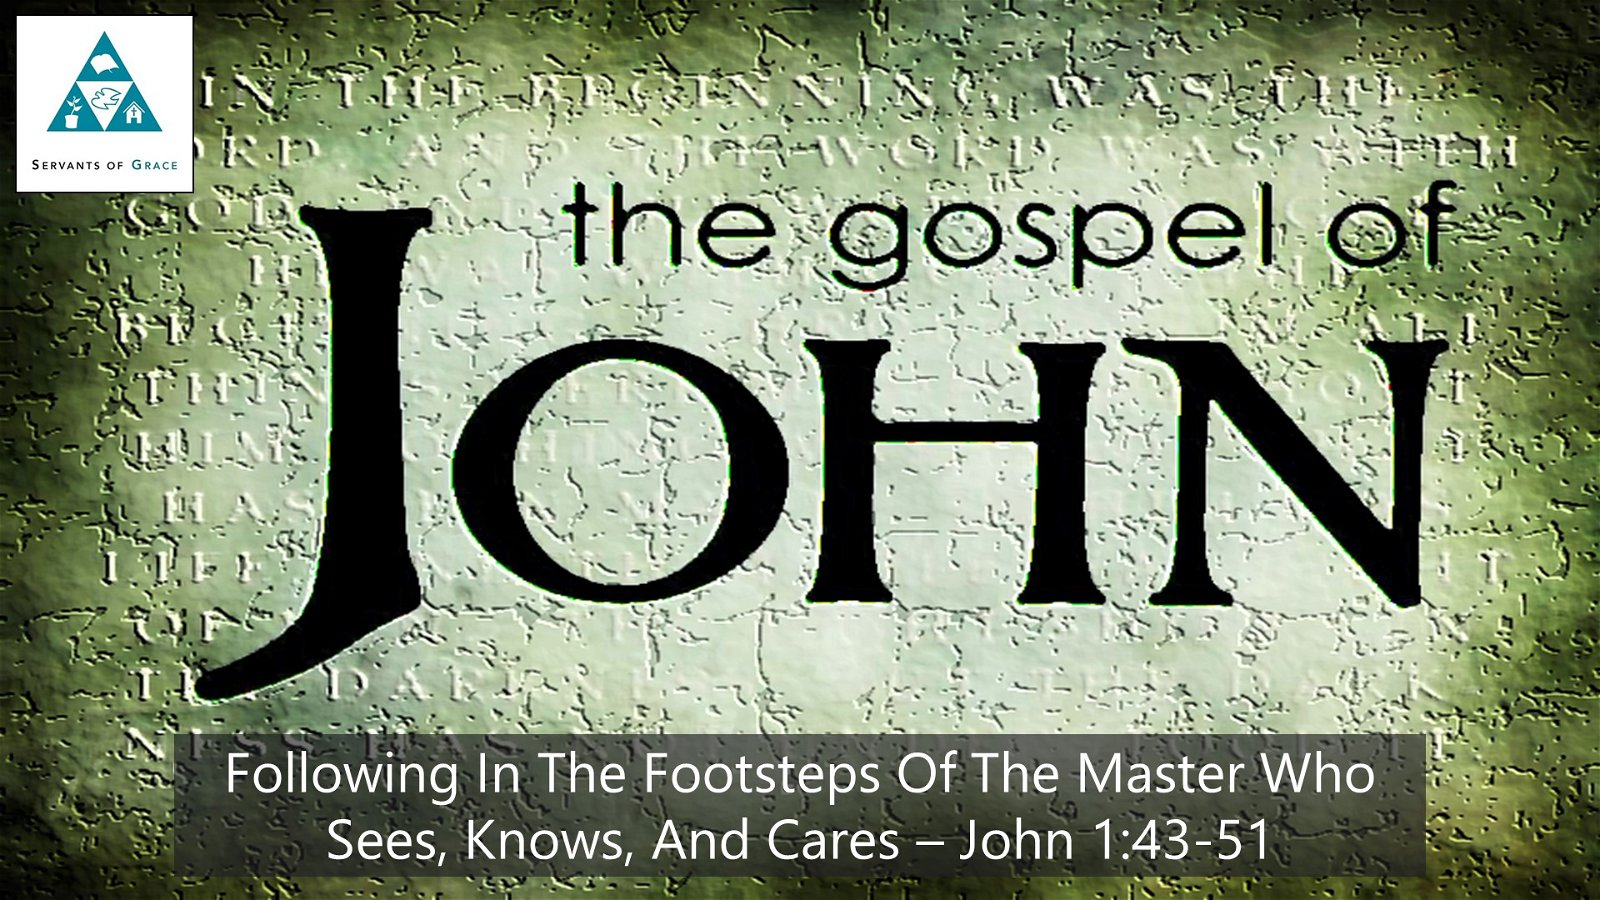 #12: Following in the Footsteps of the Master Who Sees, Knows, and Cares[Sermon] 1